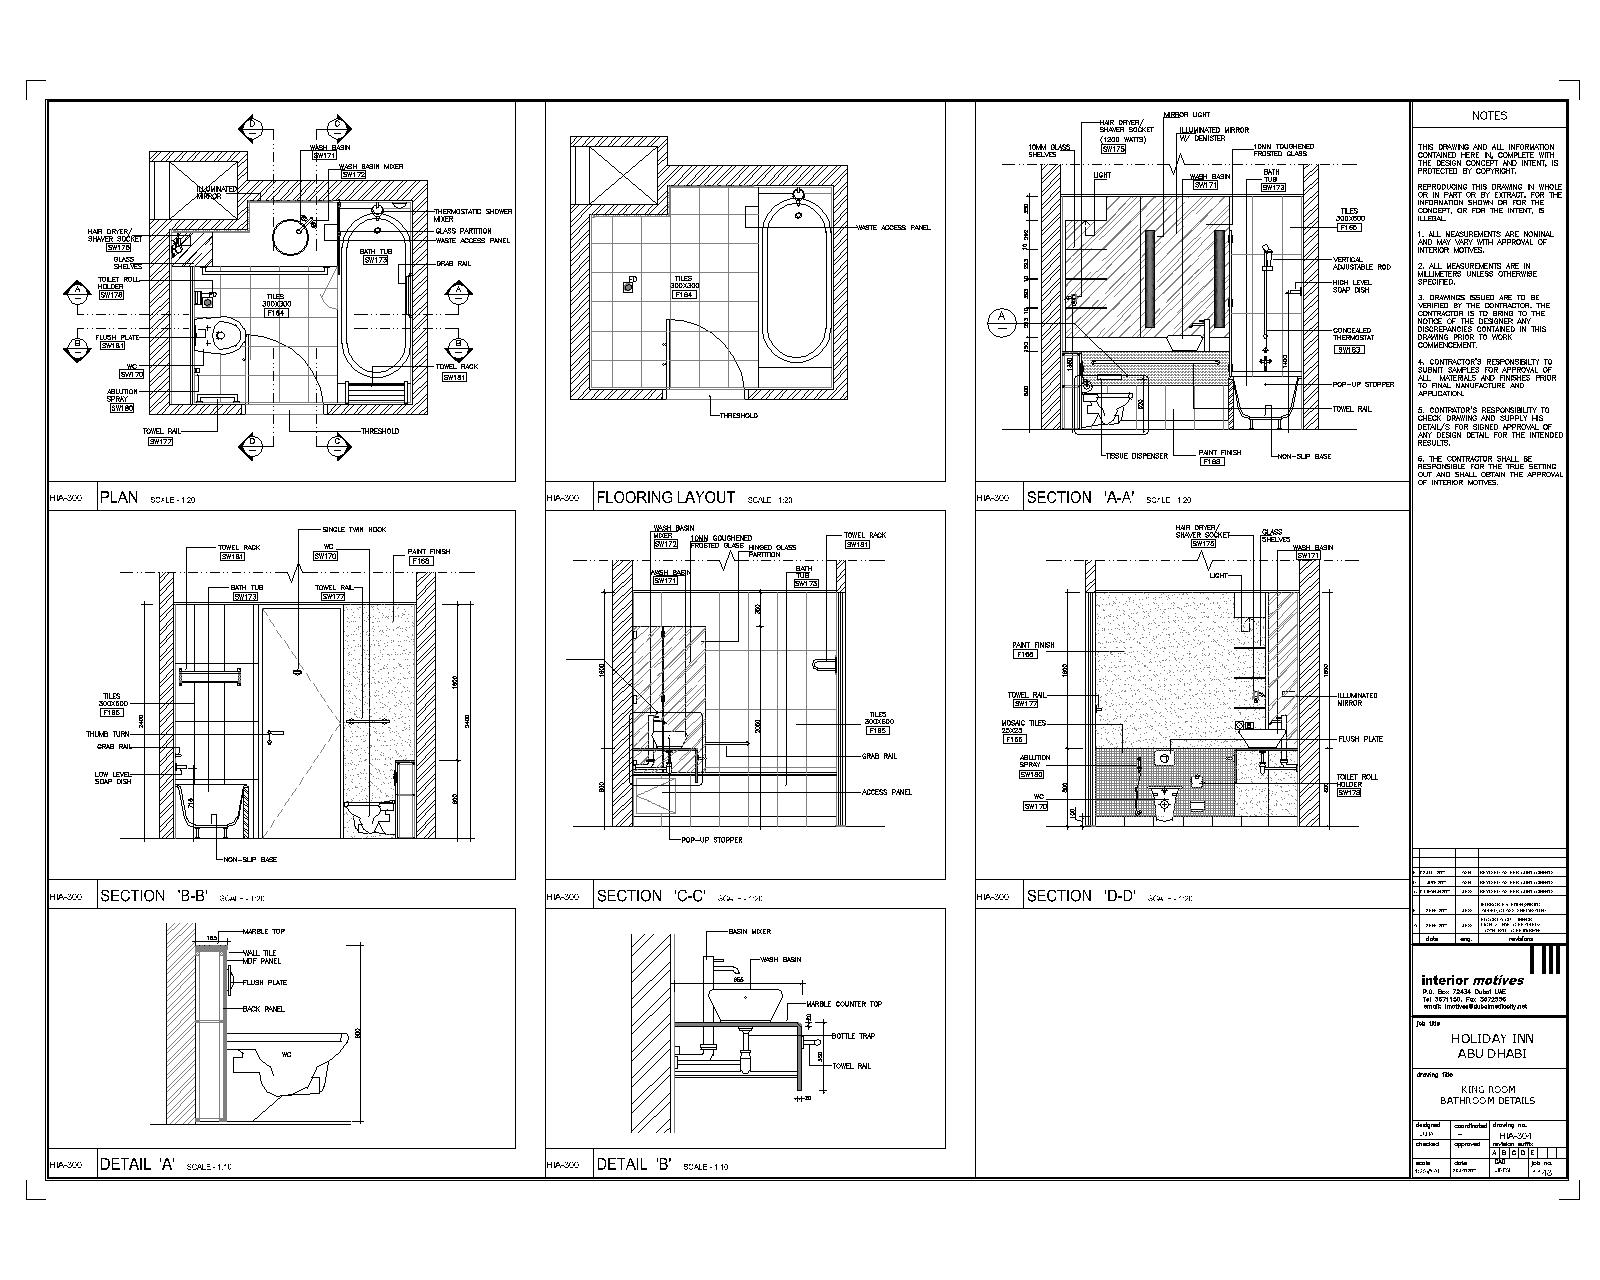 Autocad Drawings Detail By Ashik Ahammed At Coroflot Com